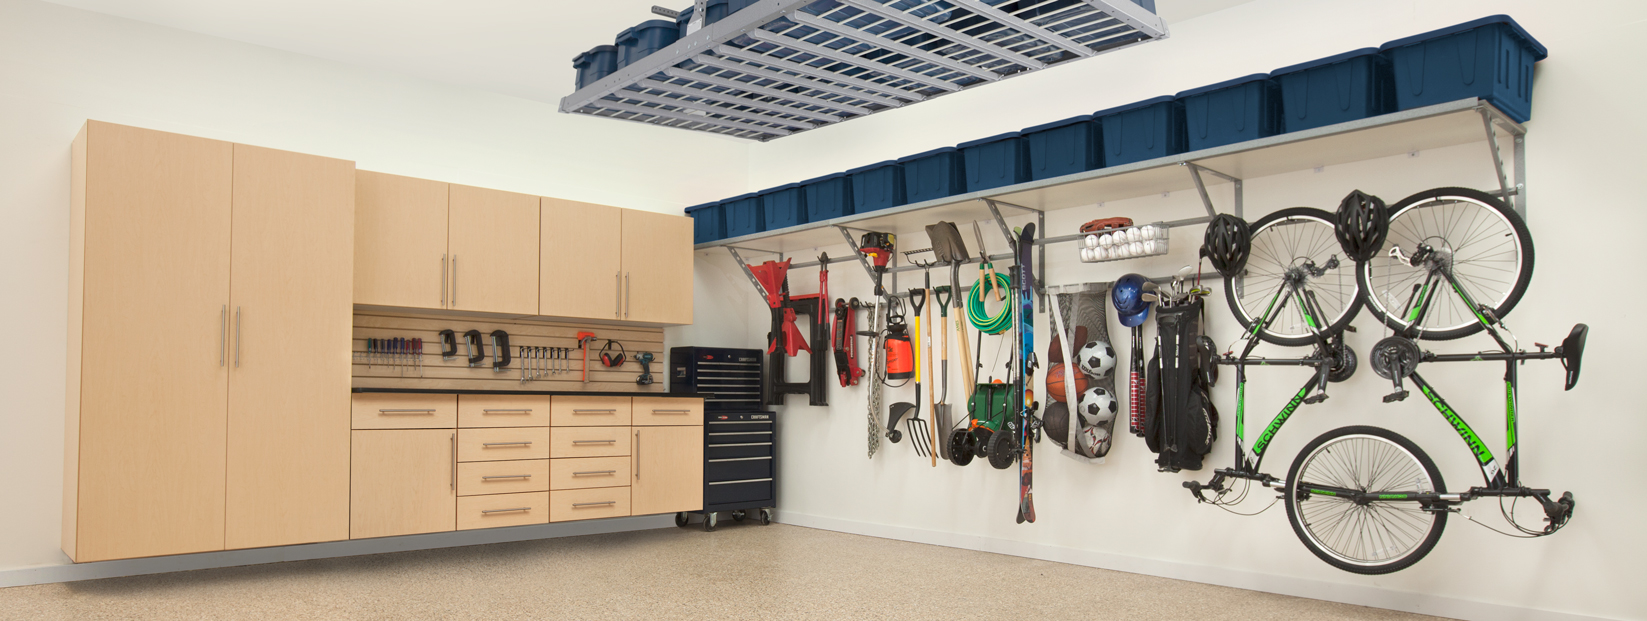 Garage Organization Las Vegas